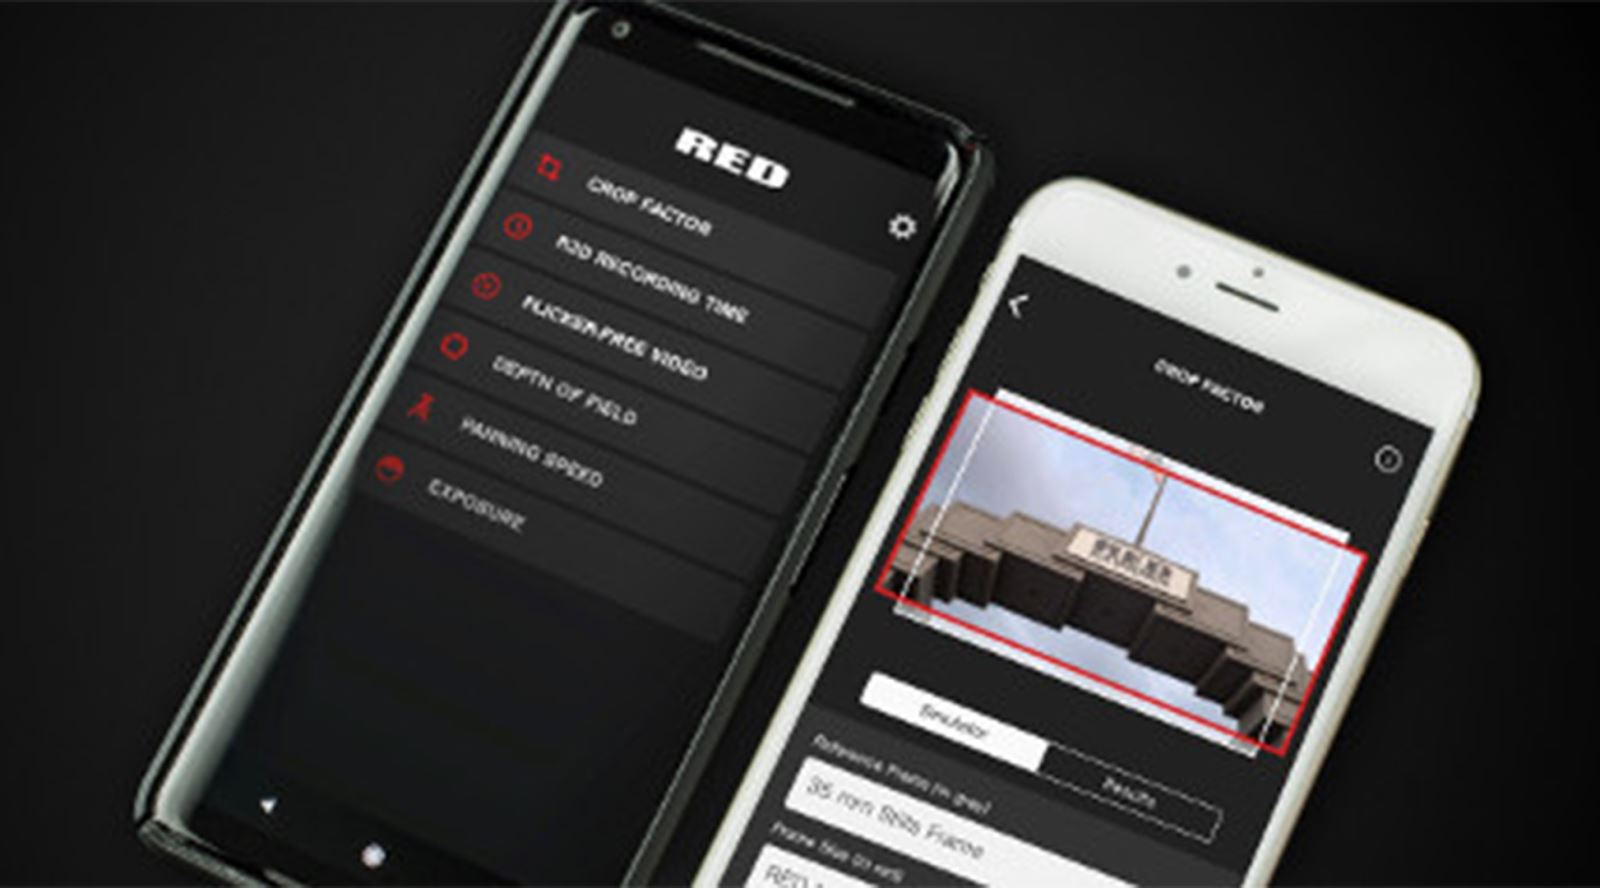 the guild of television camera professionals : updated red tools app